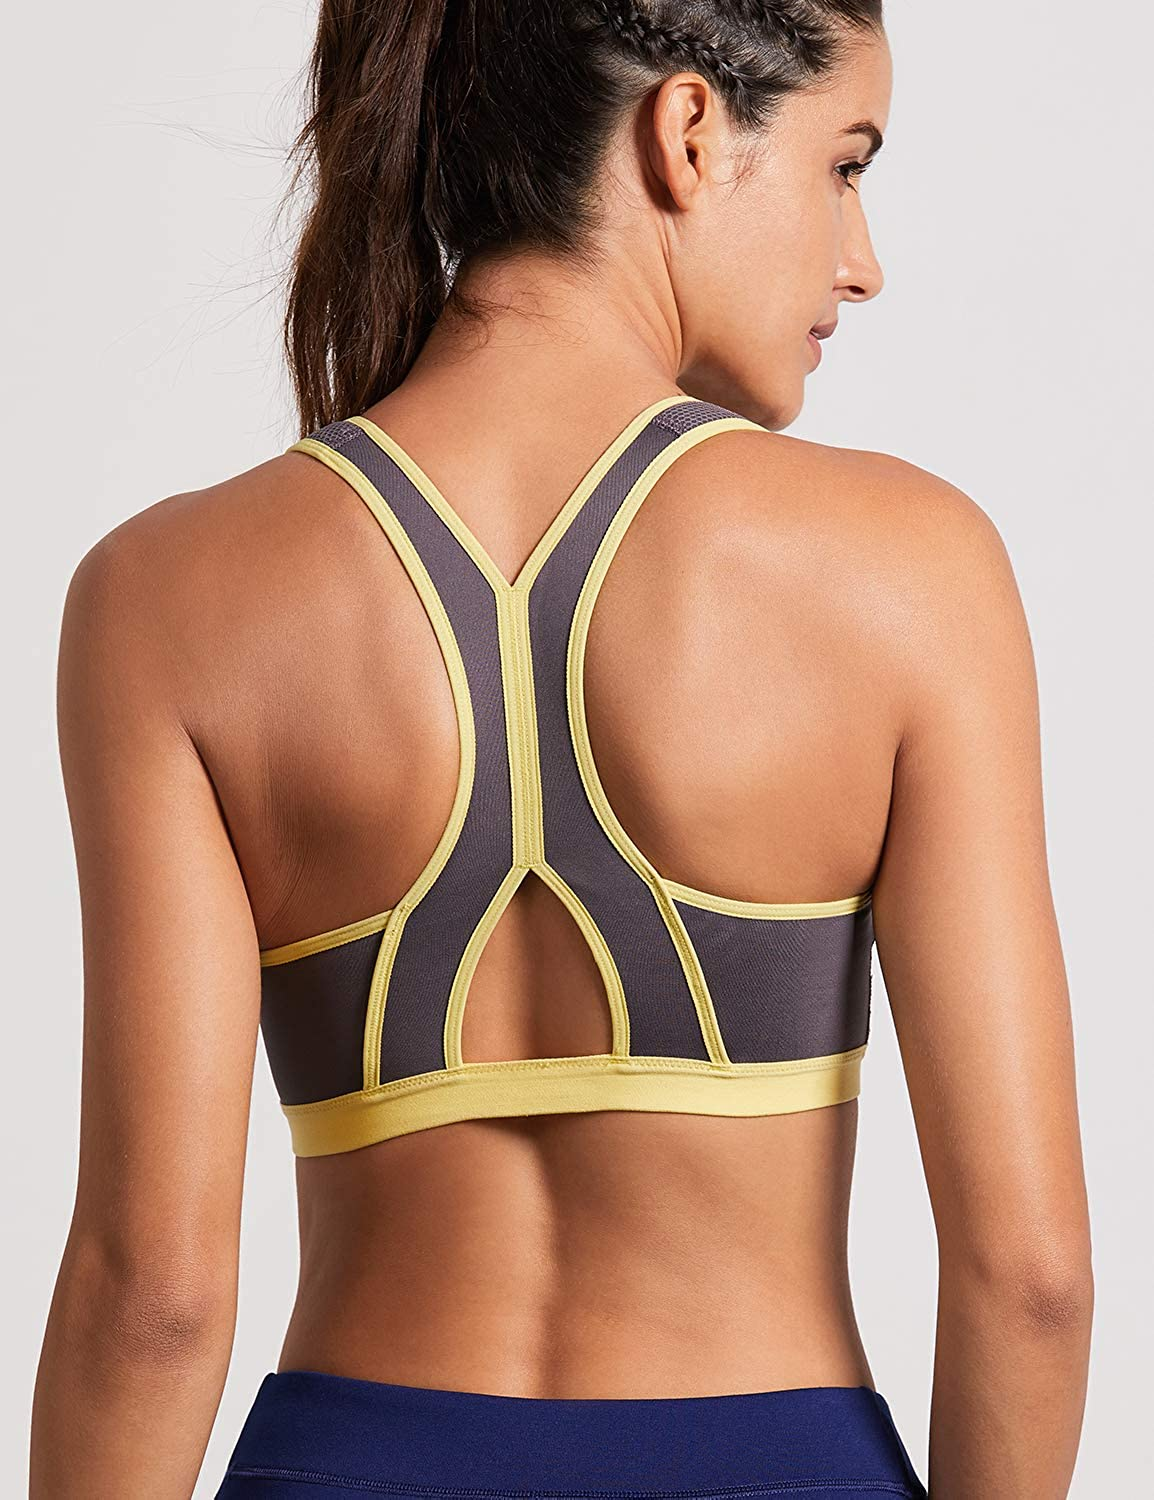 SYROKAN Womens High Impact Zipper Front Closure Wirefree Non Pads Workout Sports Bra